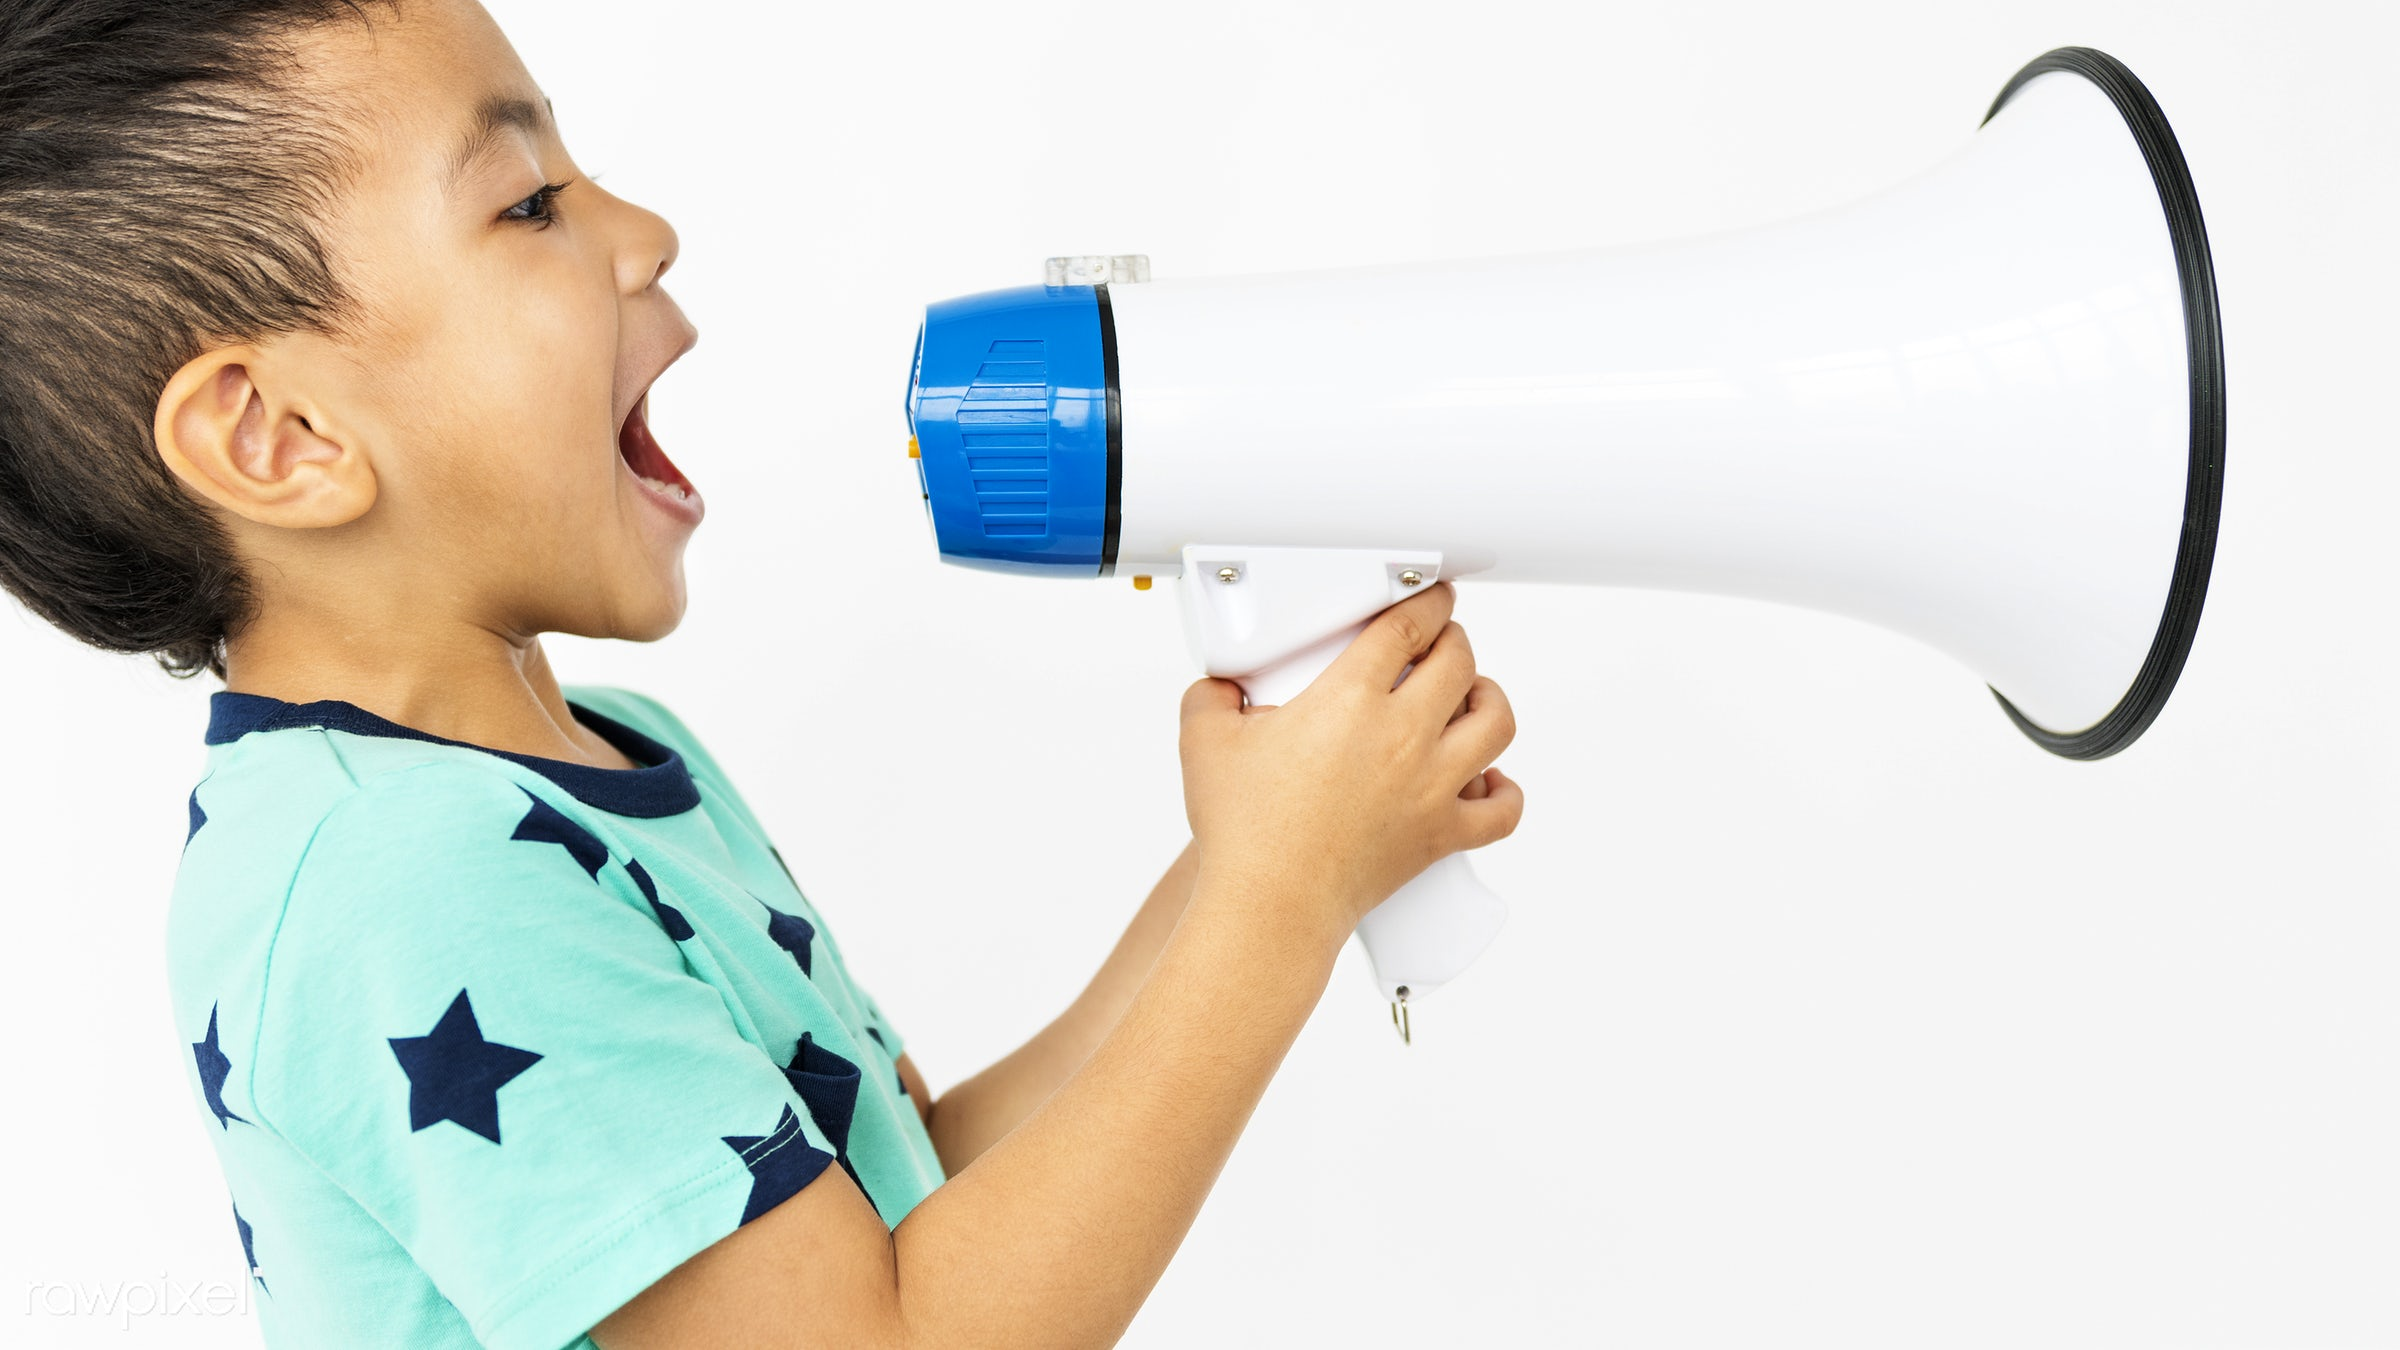 alone, boy, cheerful, child, children, isolated, kid, one, playful, smiling, young, youth, speaker, loud, megaphone, sound,...